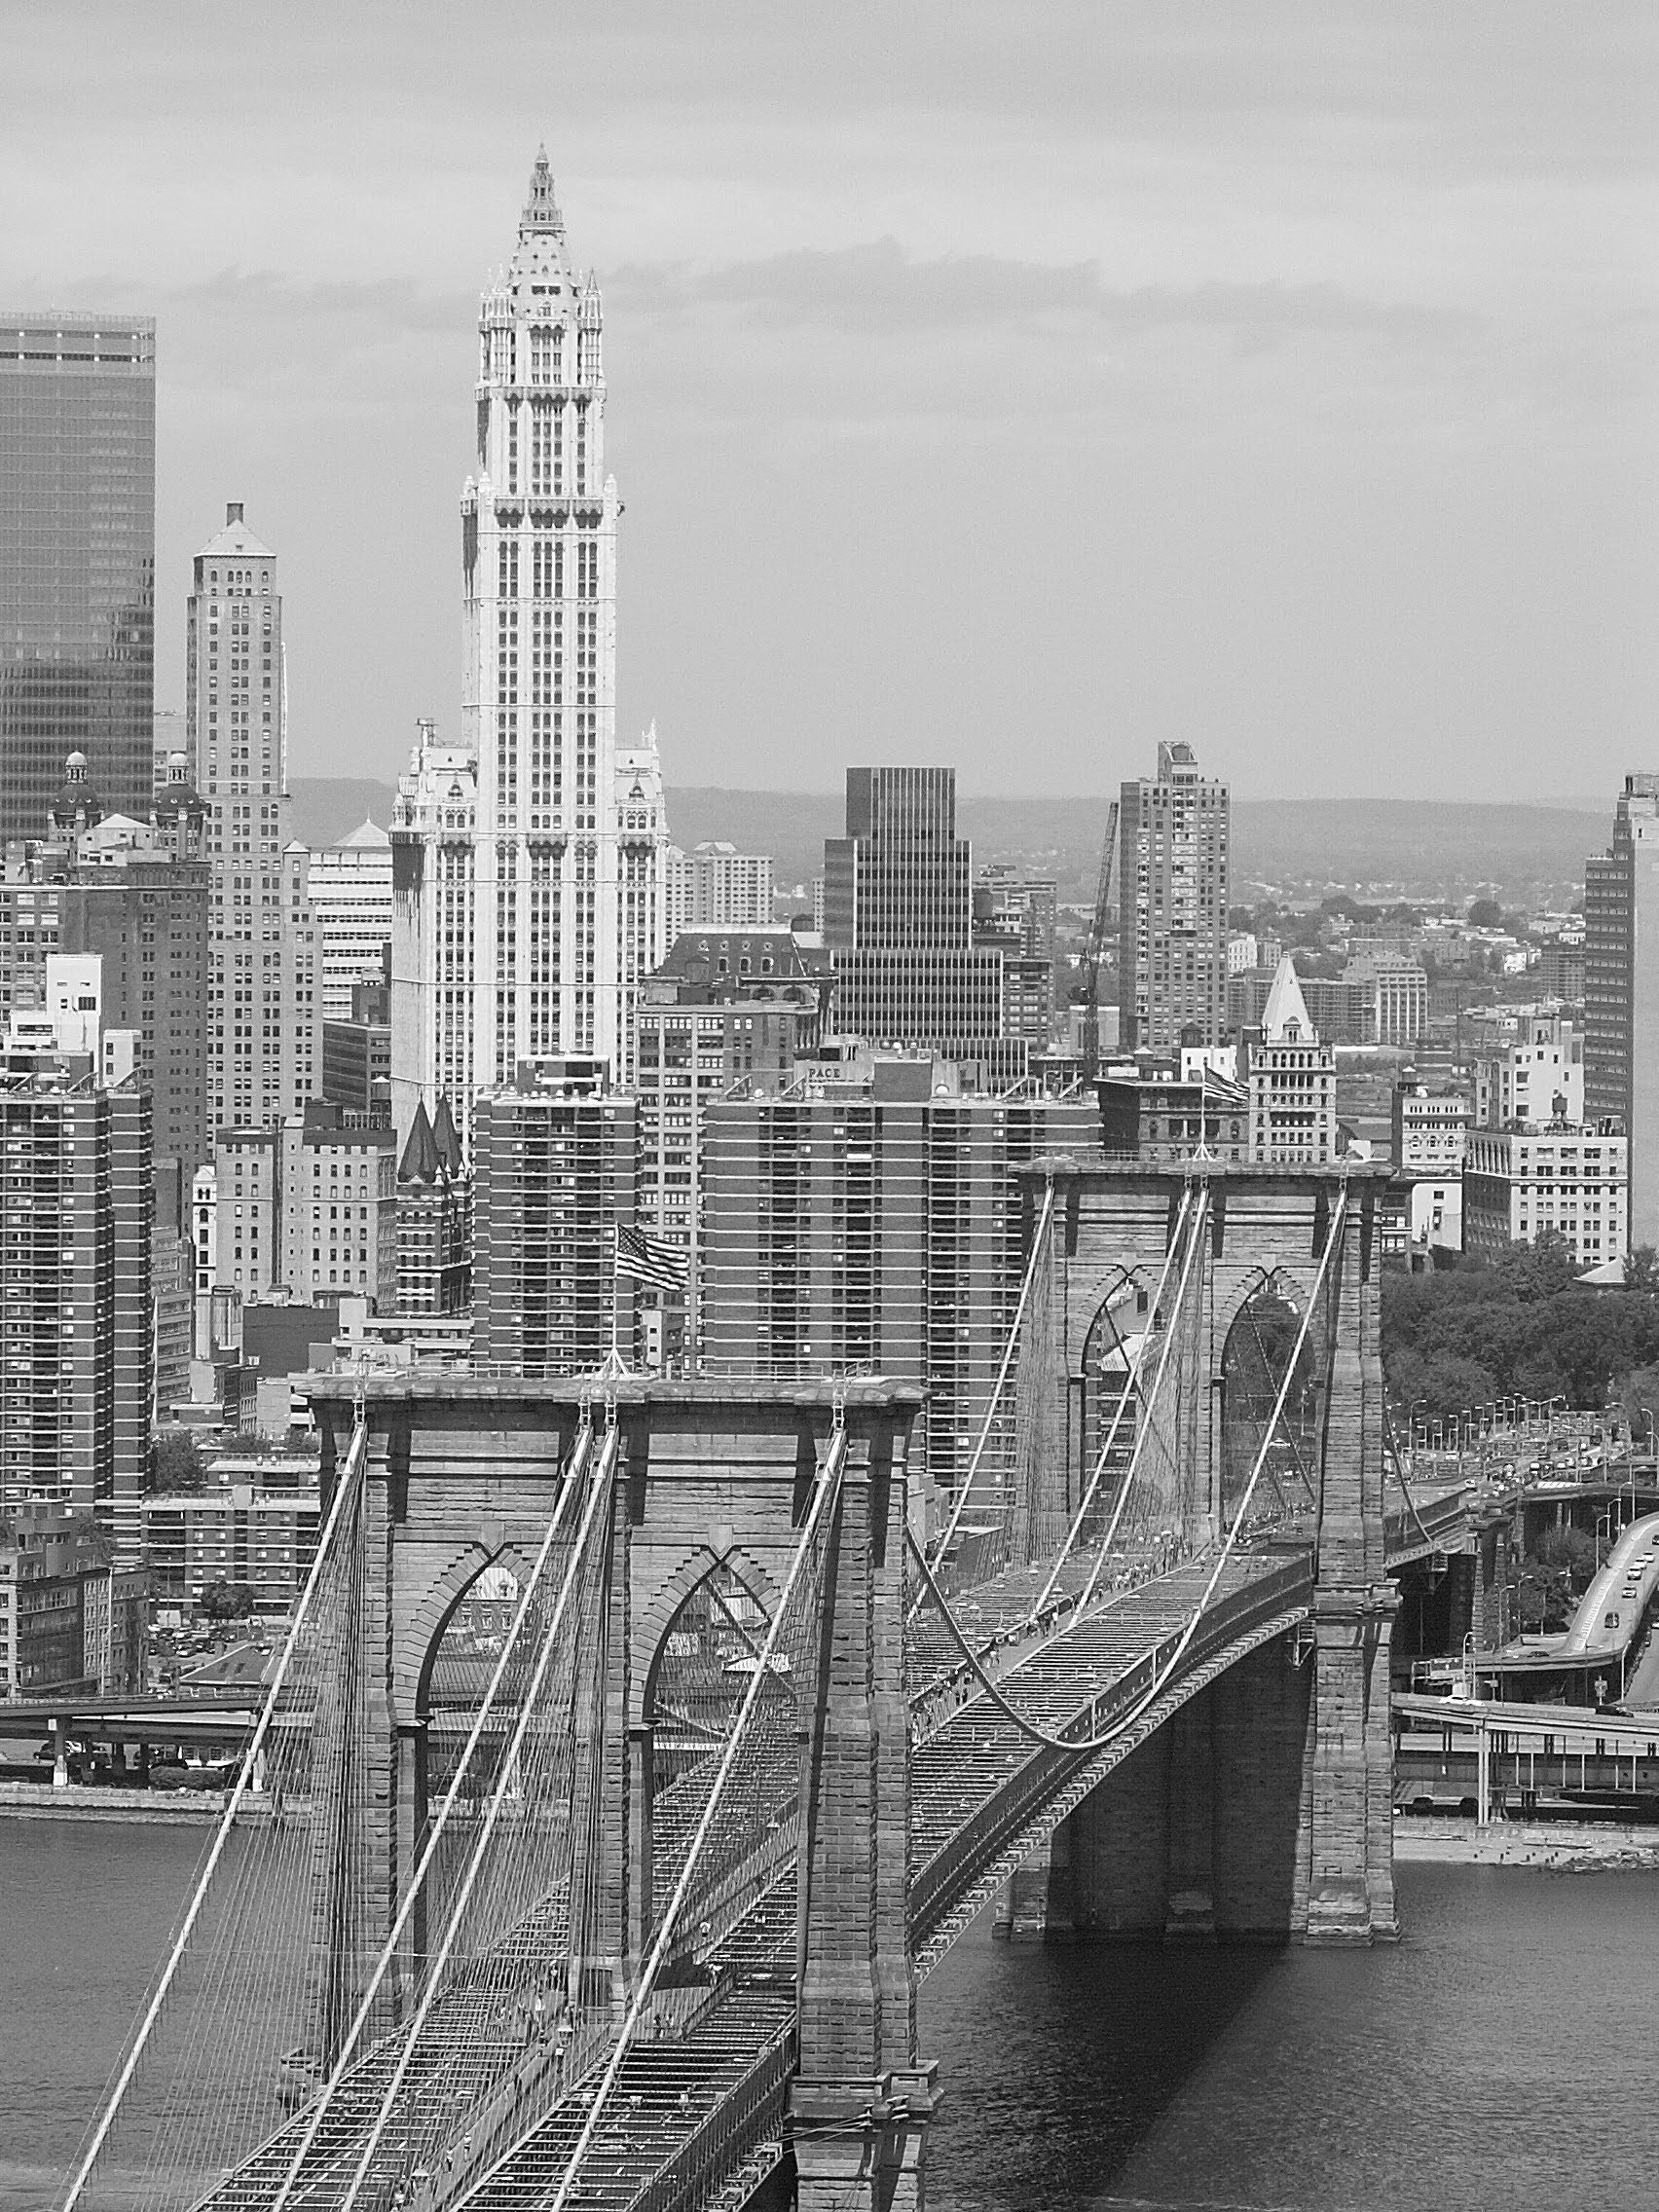 NYC - The Brooklyn Bridge, New York City